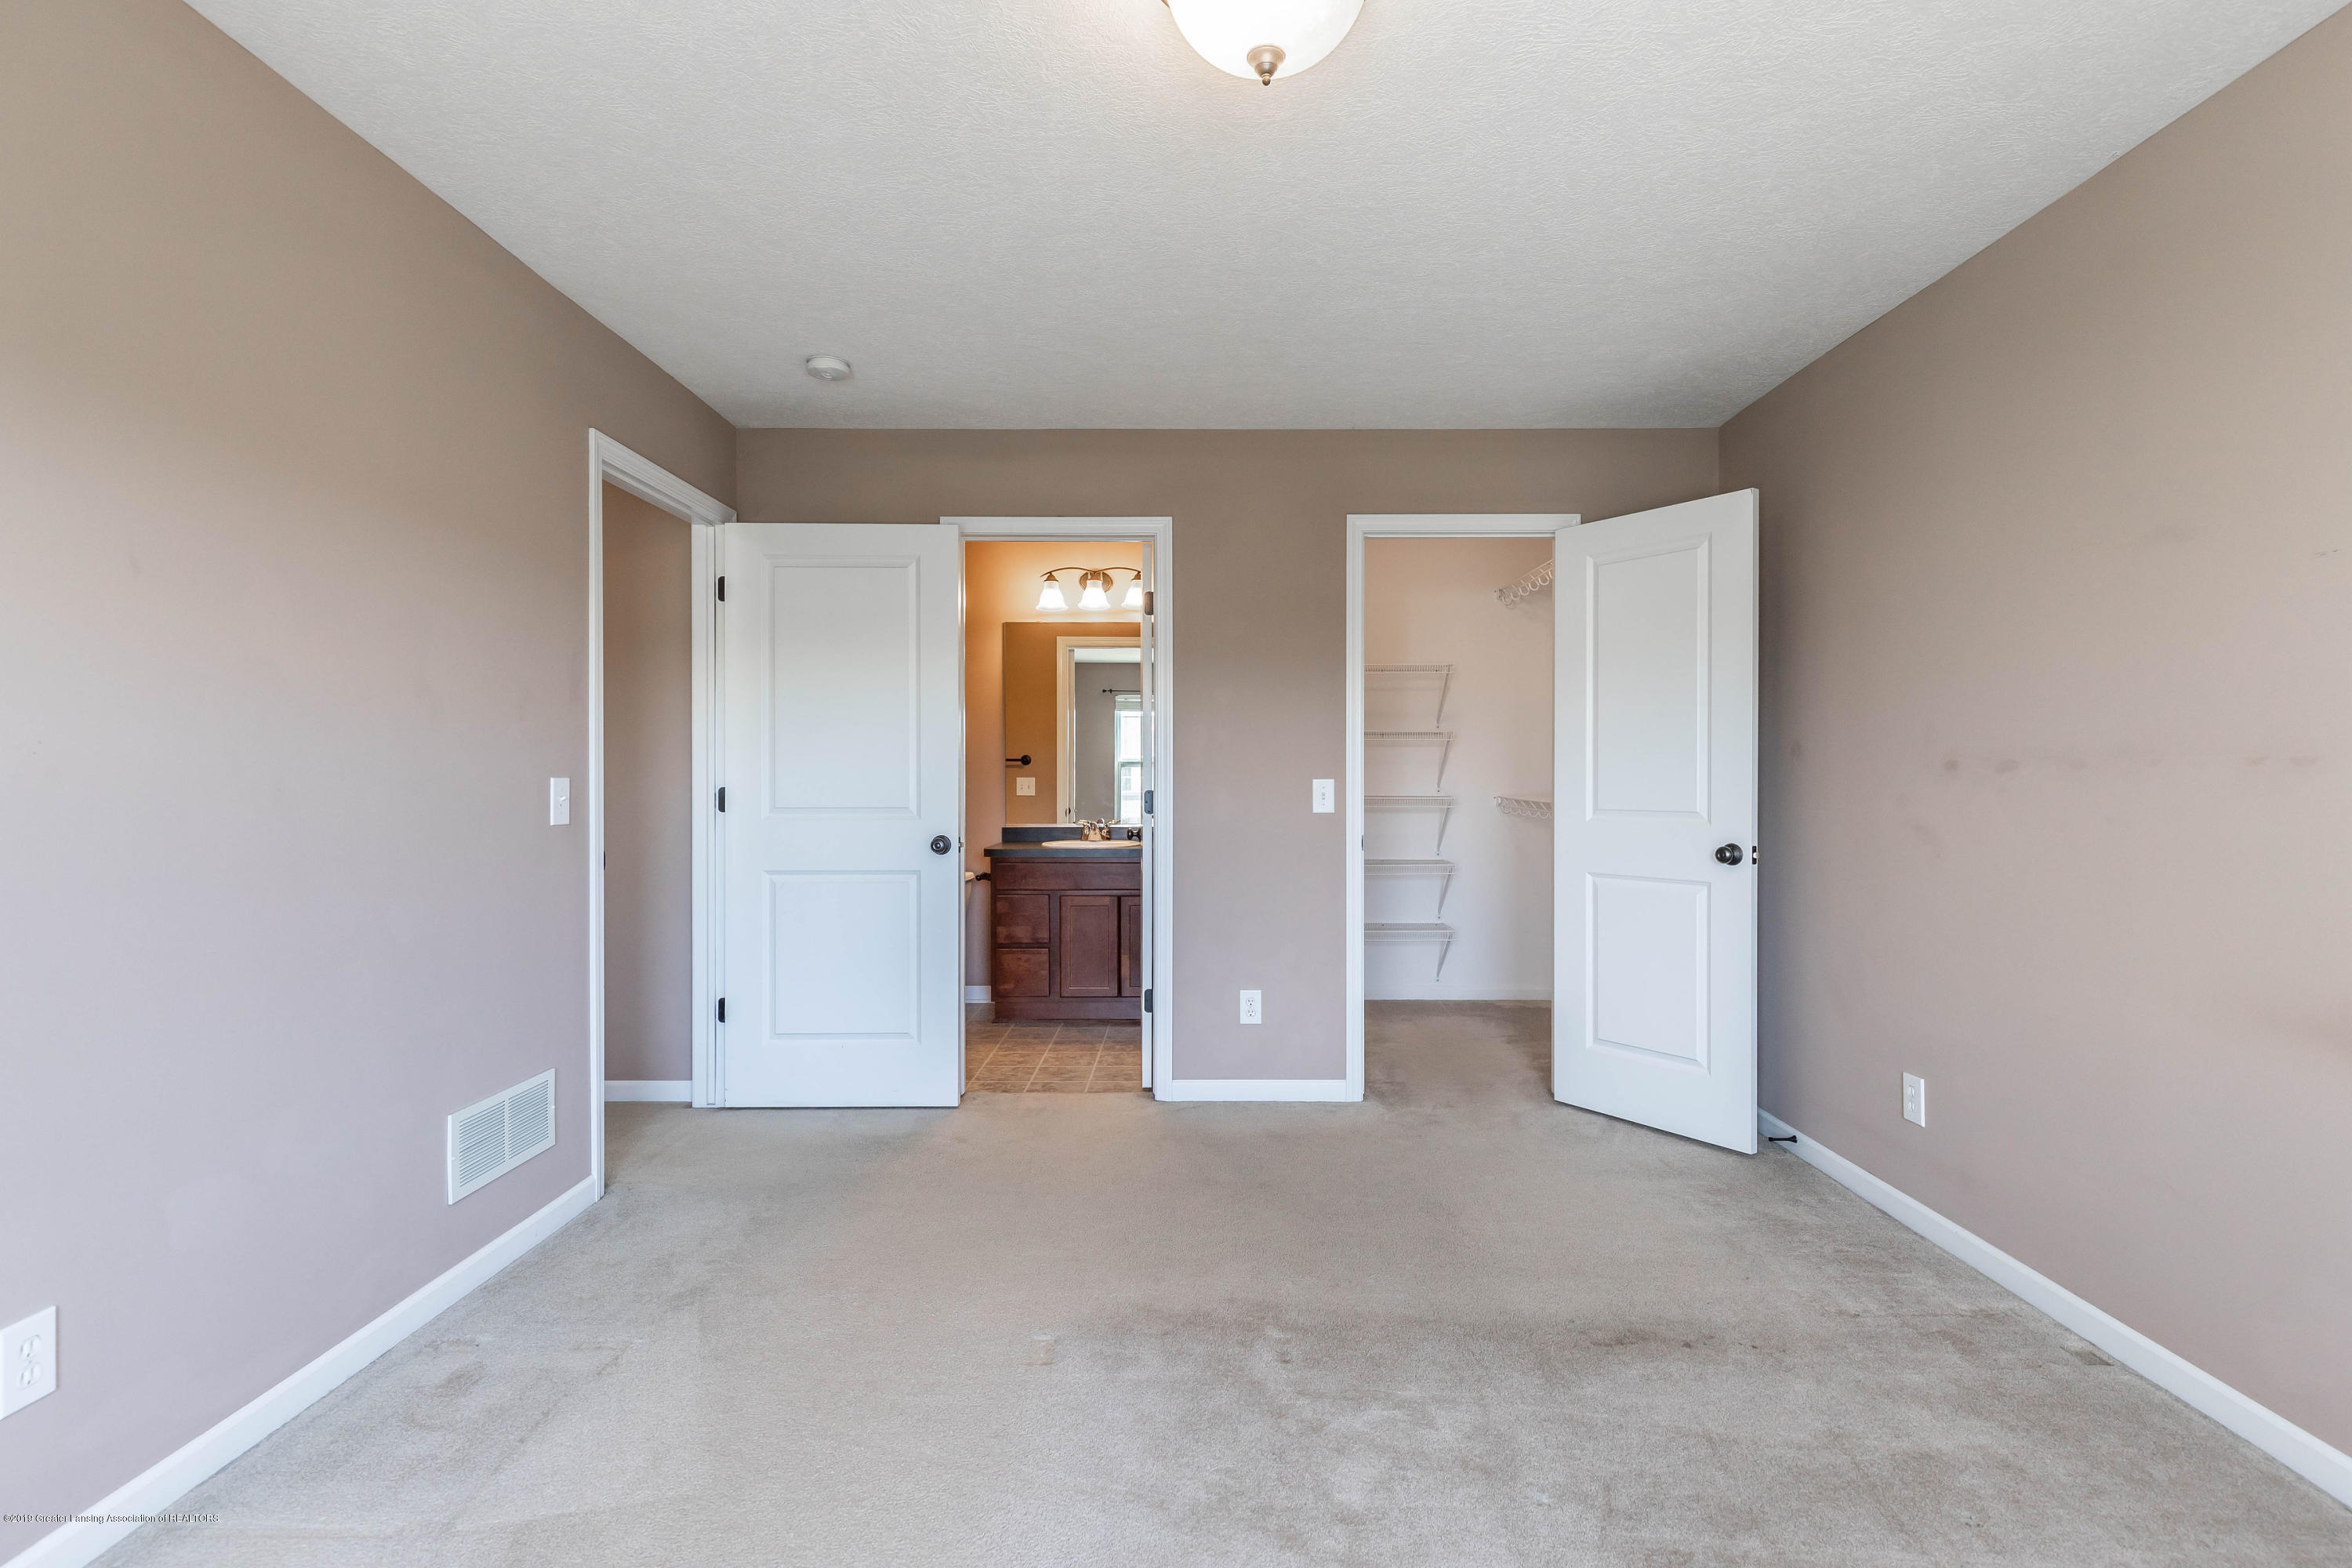 15125 Loxley Ln - loxleybed12(1of1) - 15